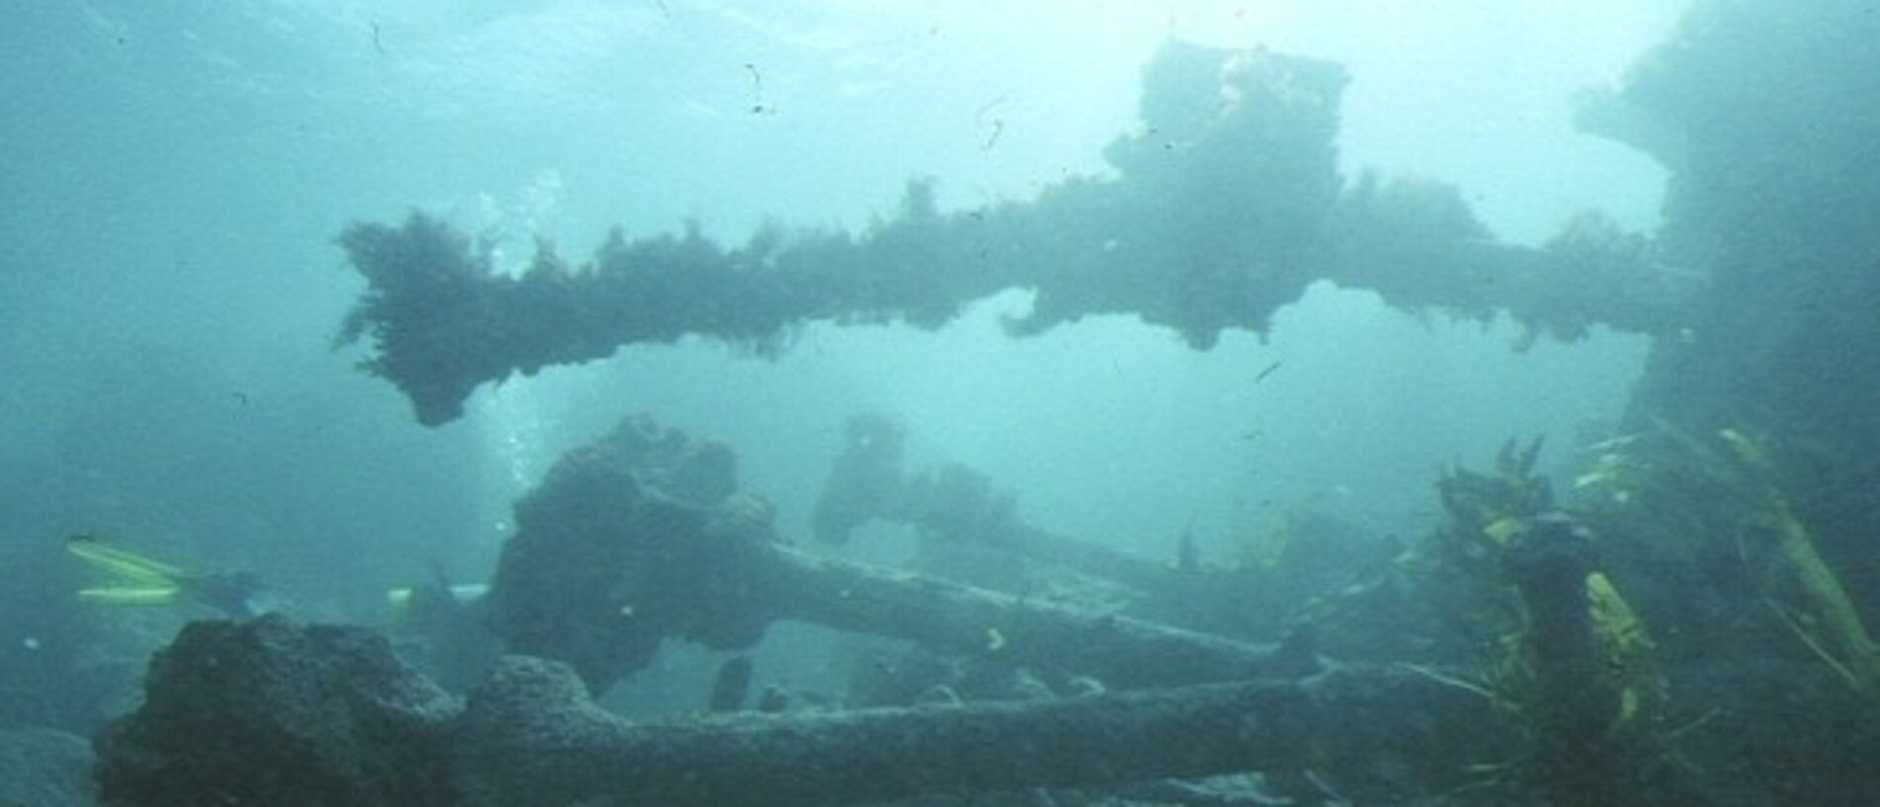 The deadly shipwreck that preceded Harold Holt's drowning death